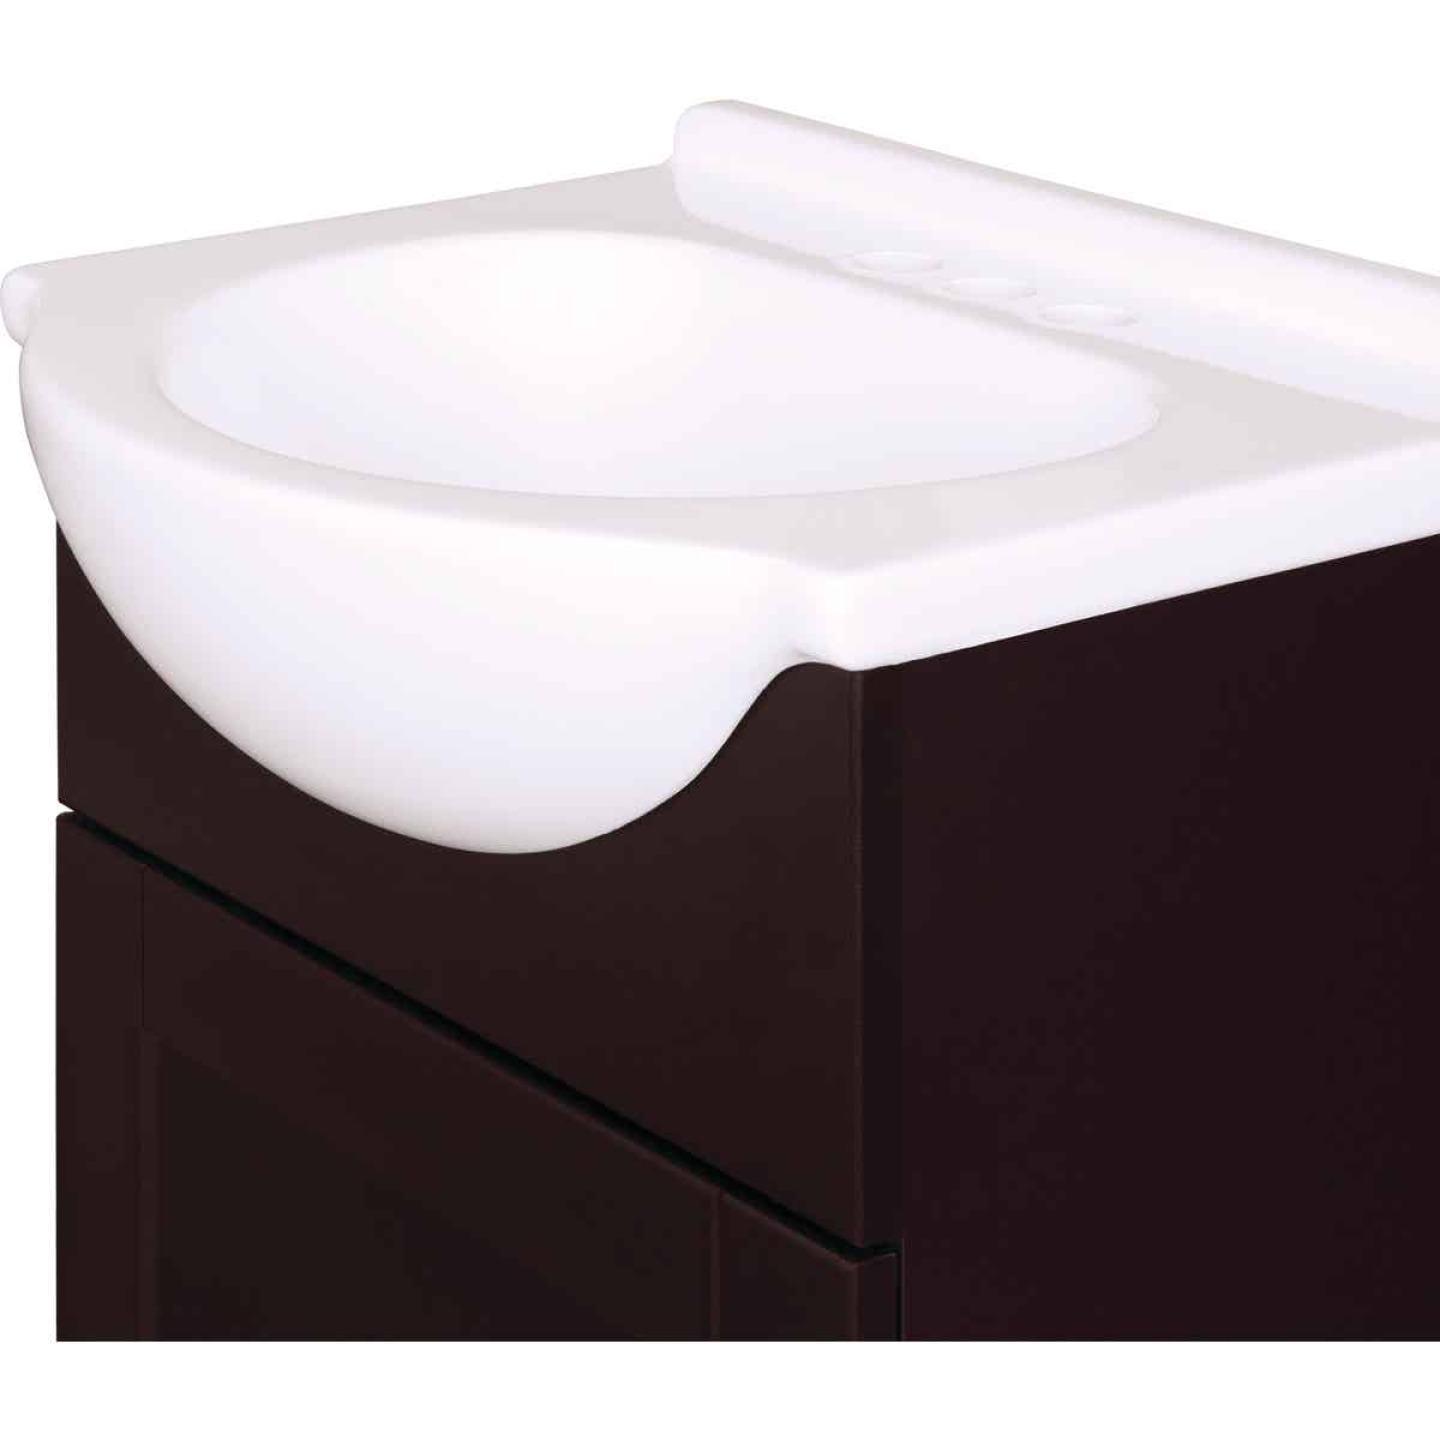 Continental Cabinets European Espresso 18 In. W x 33-1/2 In. H x 12-1/2 In. D Vanity with White Cultured Marble Top Image 5